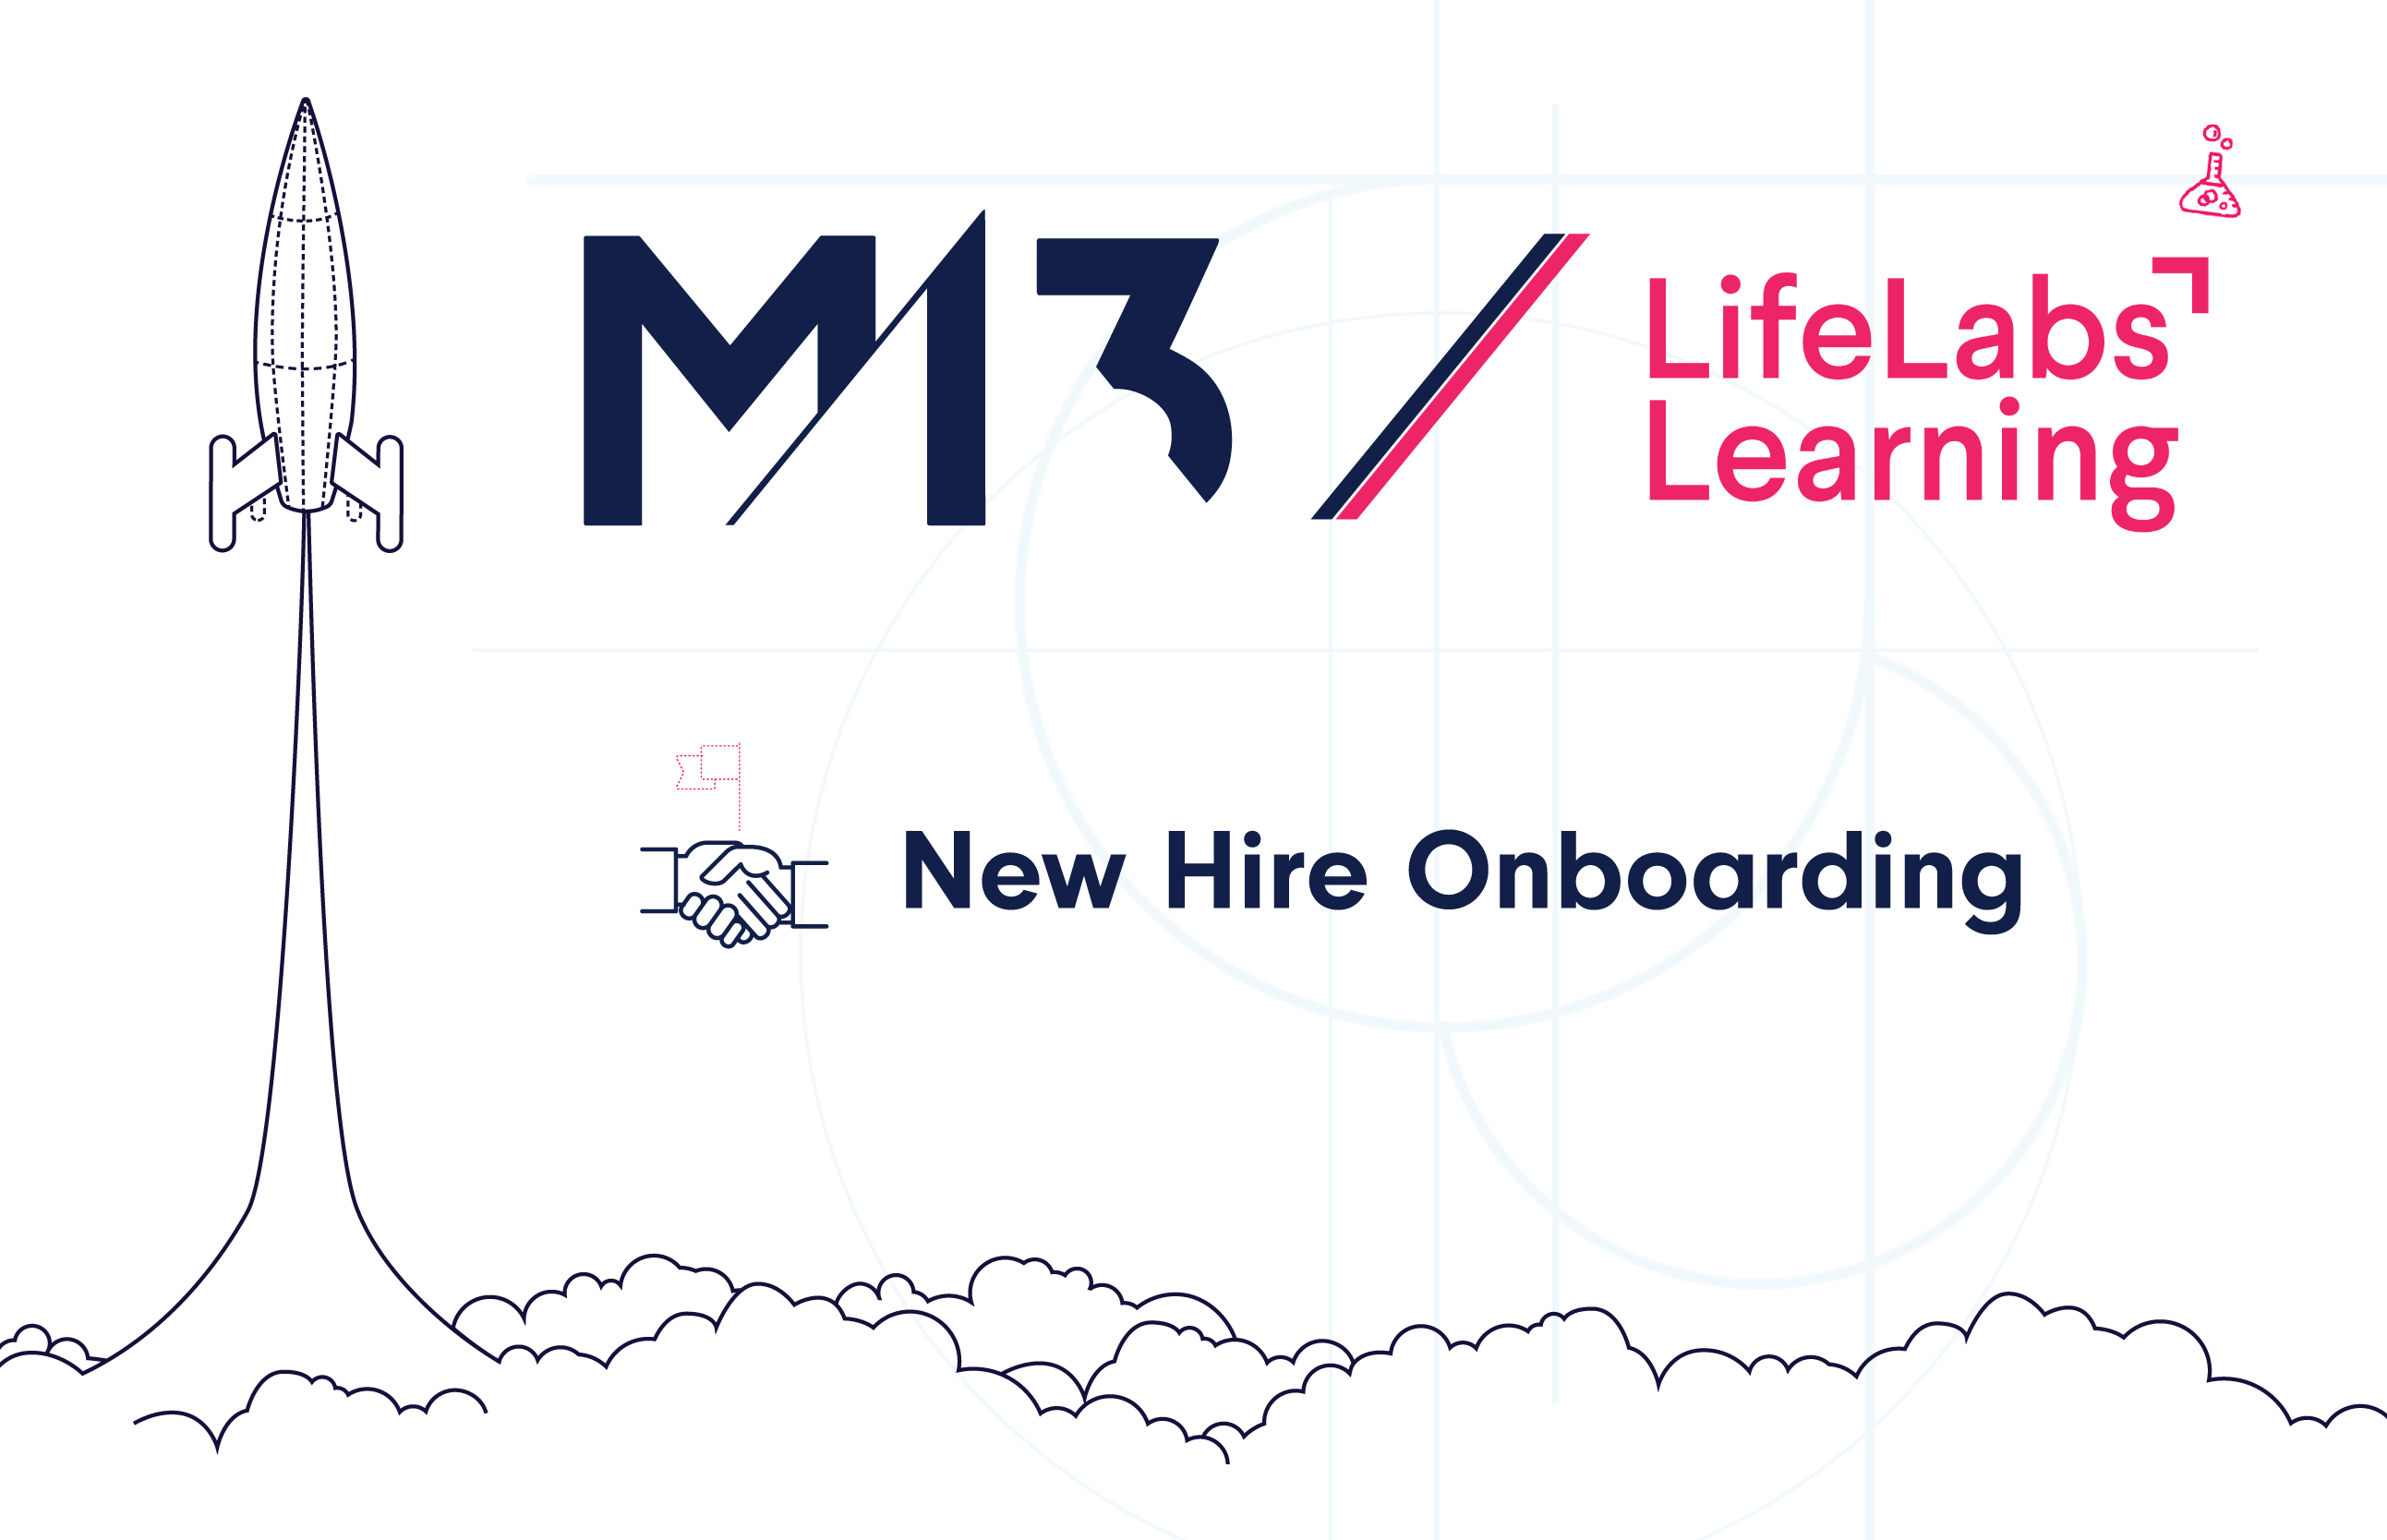 A Founder's Guide to Onboarding New Hires